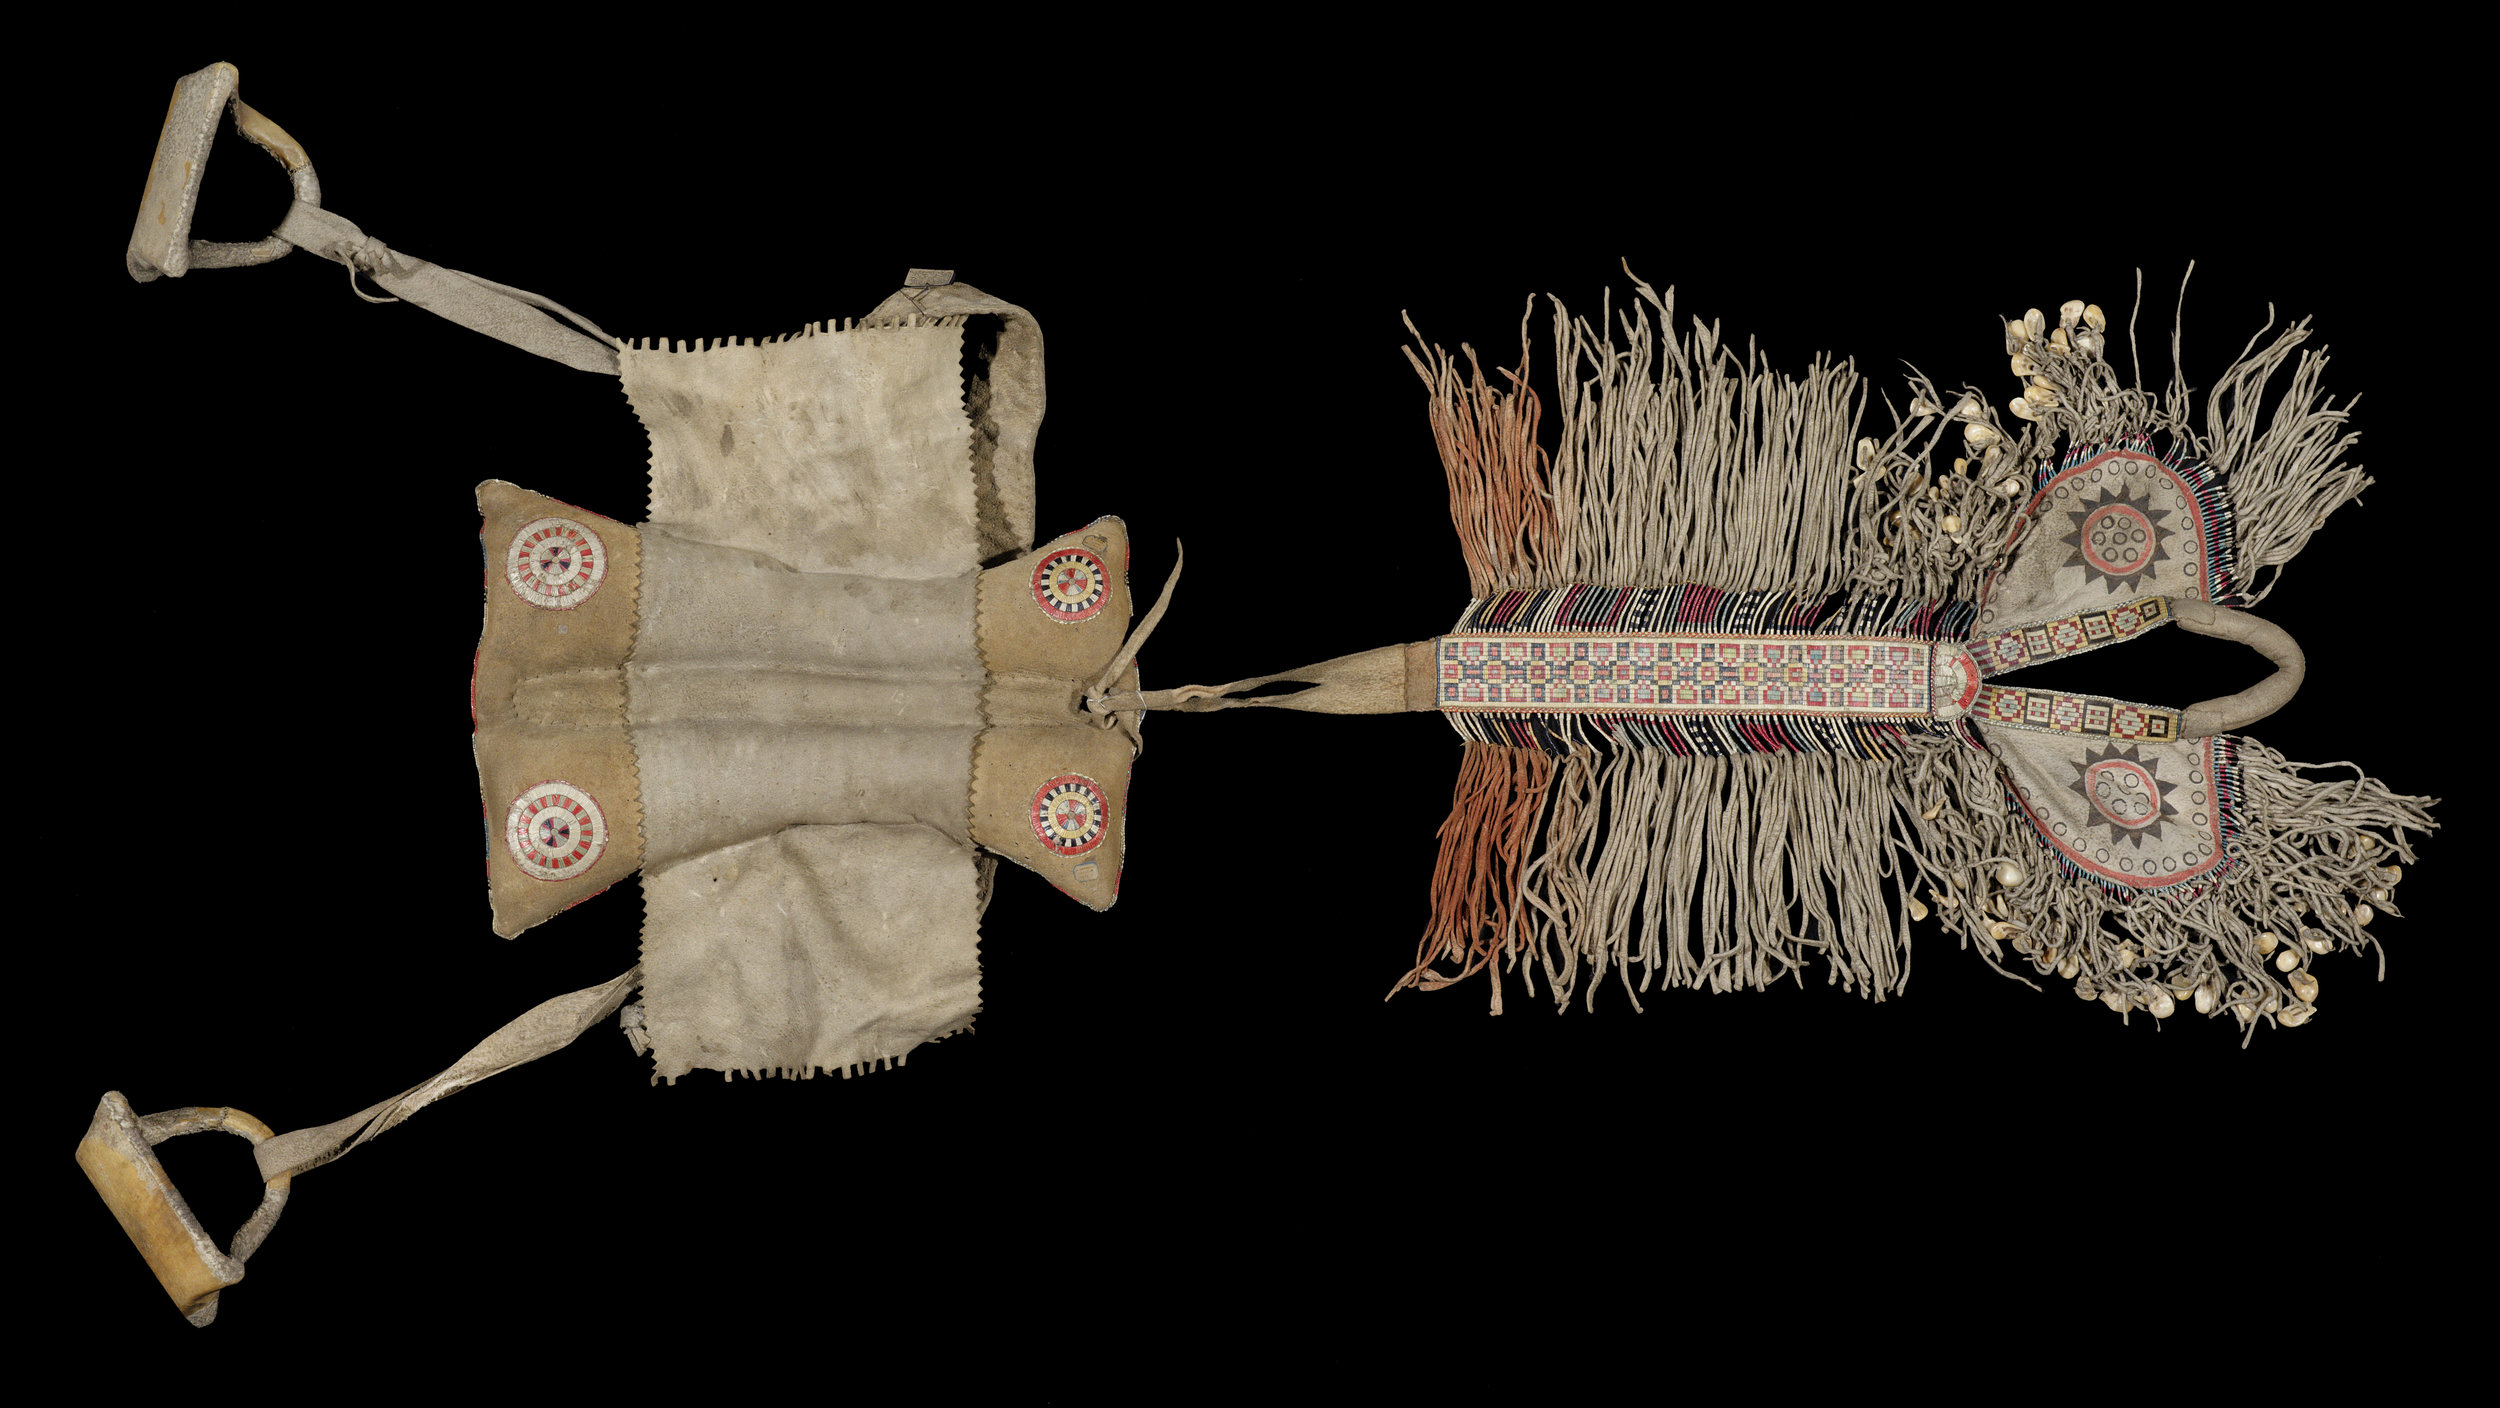 Padded saddle, Plains, North America. Pitt Rivers Museum, cat. # 1884.51.14 .Image courtesy of the  Pitt Rivers Museum .